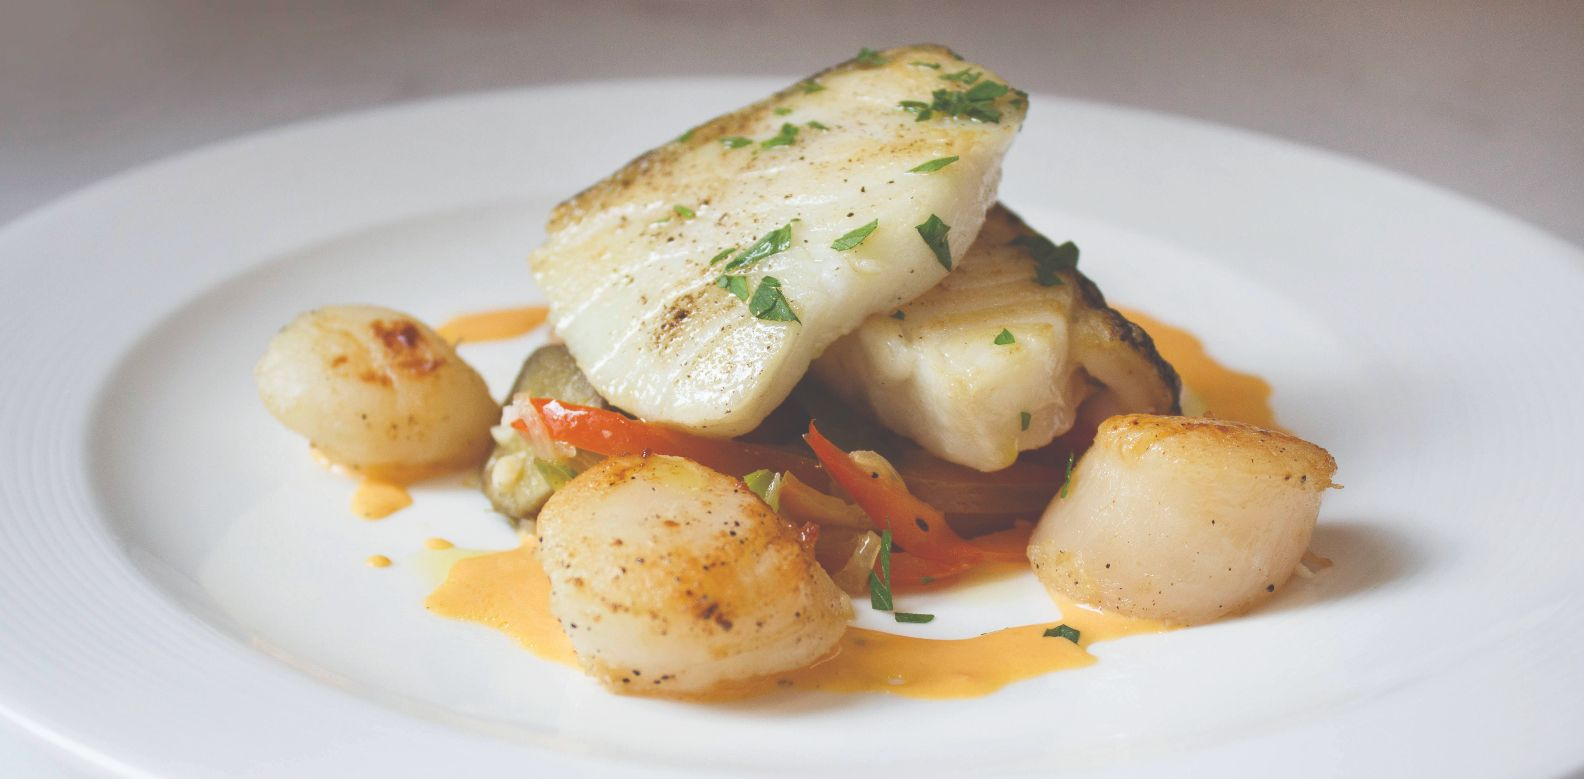 Grilled duo of Chilean sea bass, scallop, and vegetable bayaldi gratin